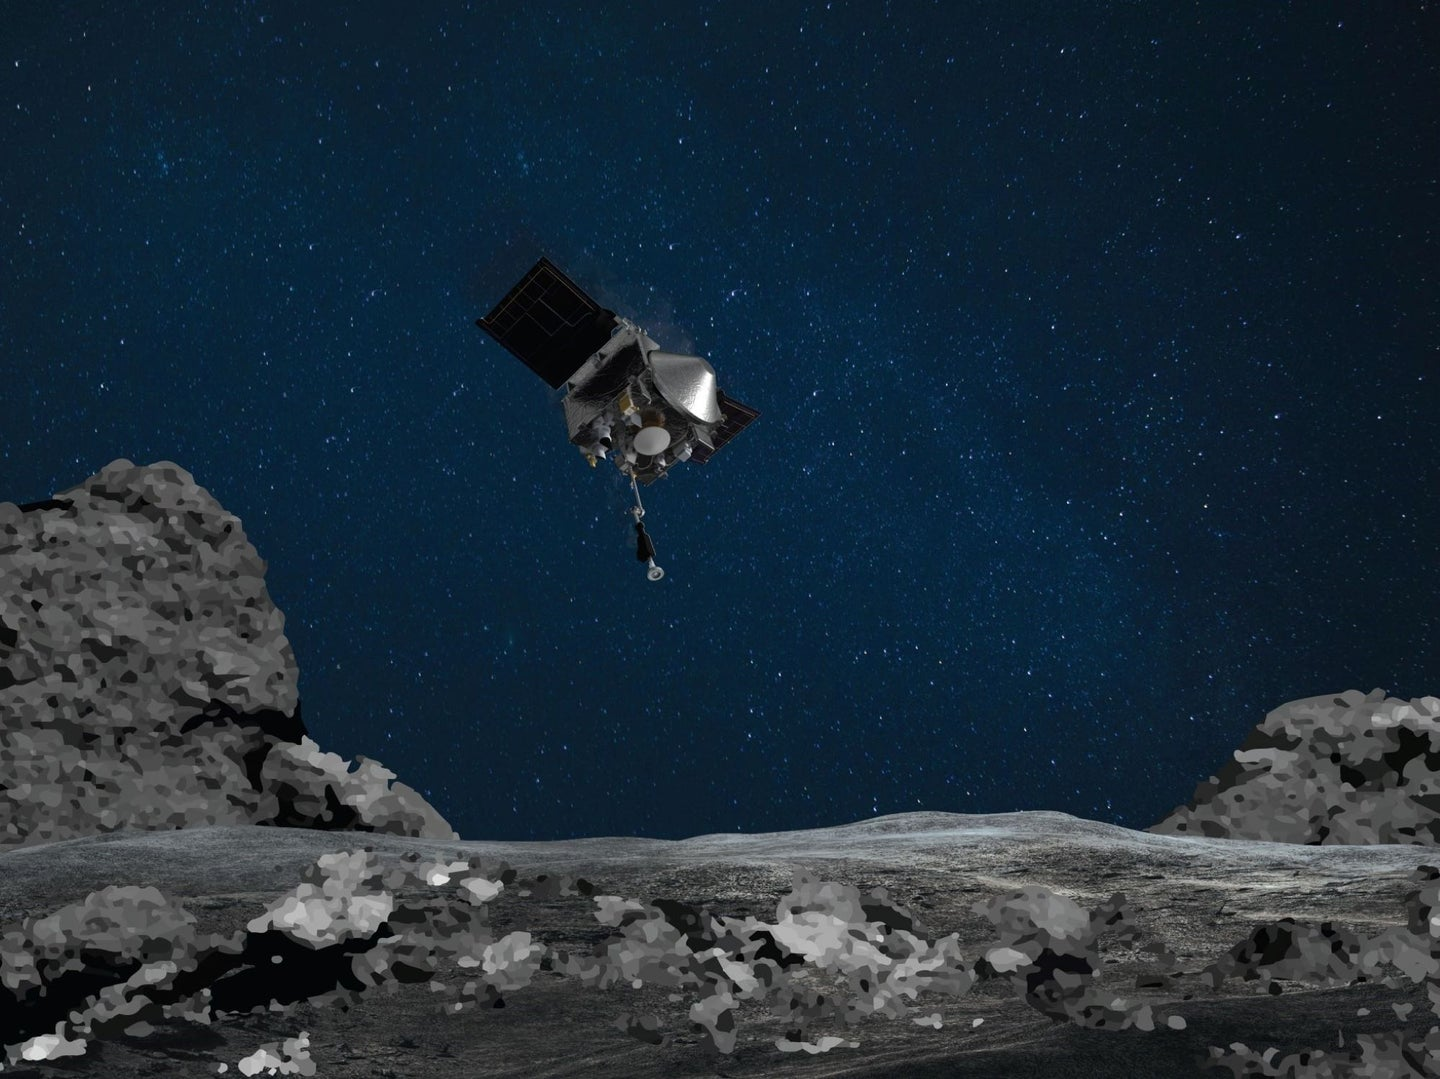 The spacecraft OSIRIS-REx in the sky over a rendering of the ground on asteroid Bennu